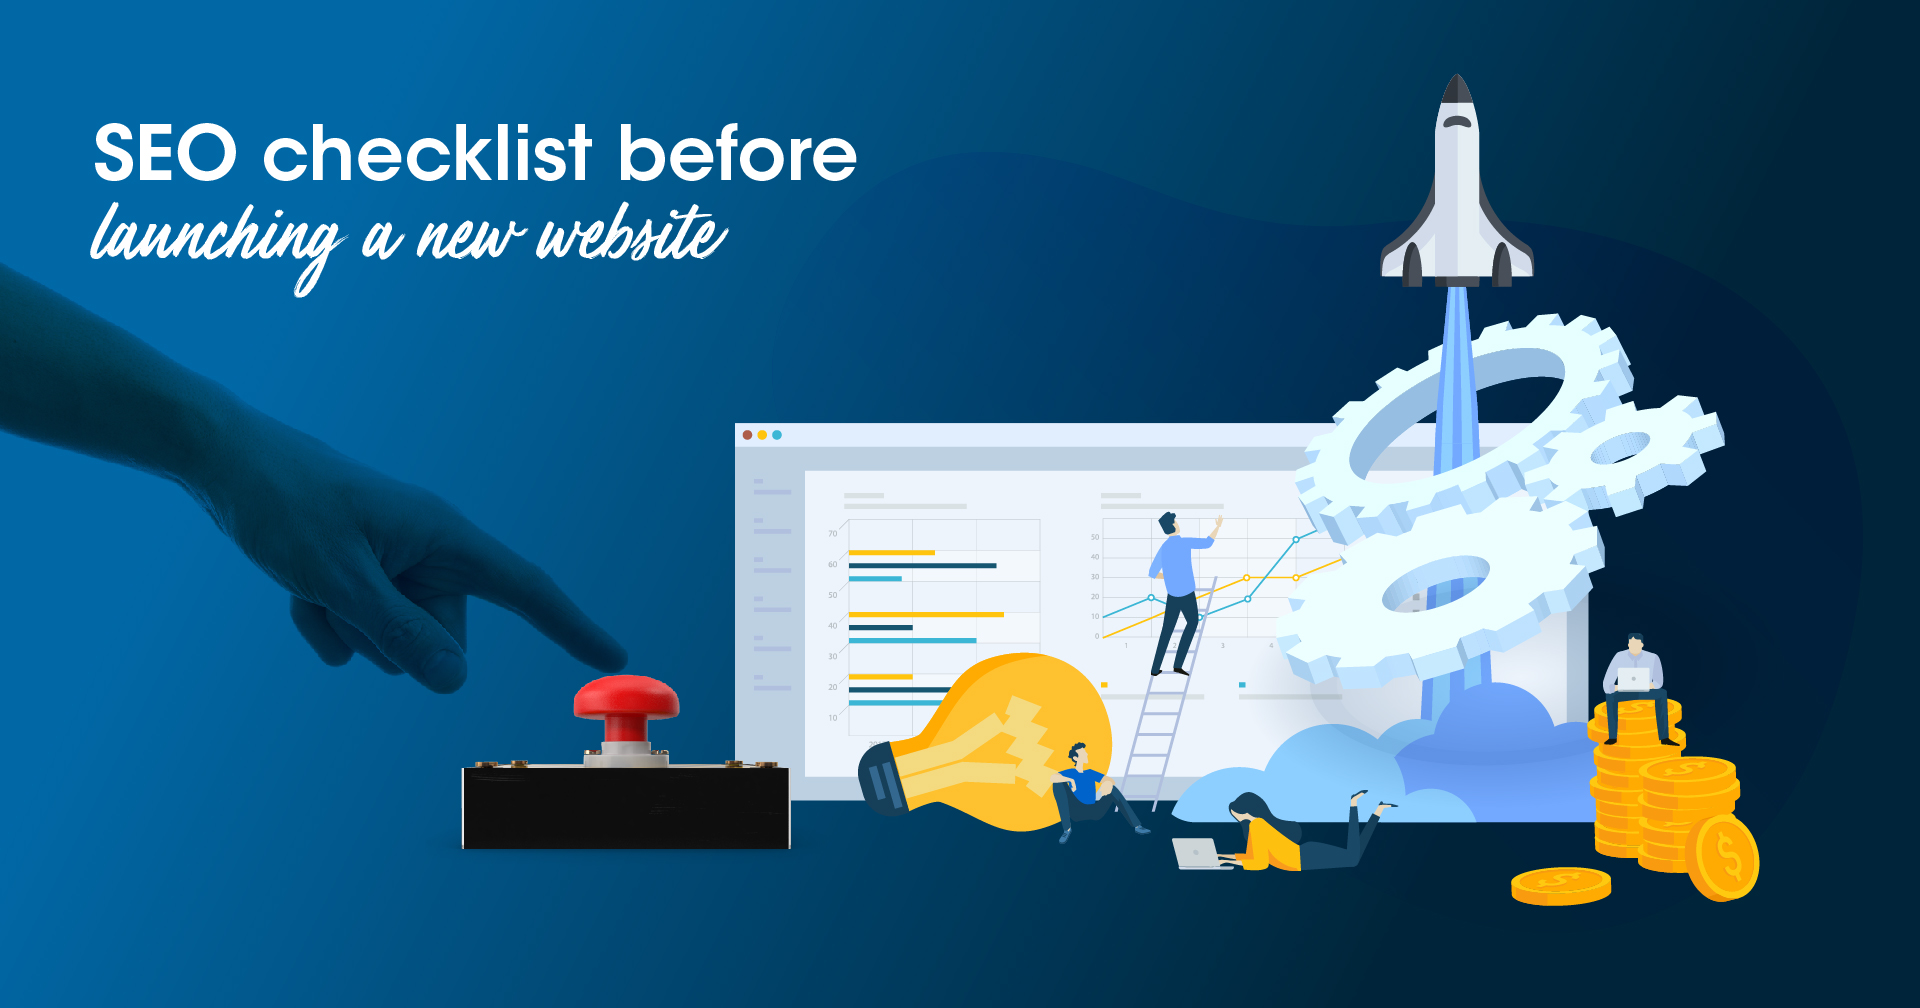 7 Point SEO Checklist for your New Website